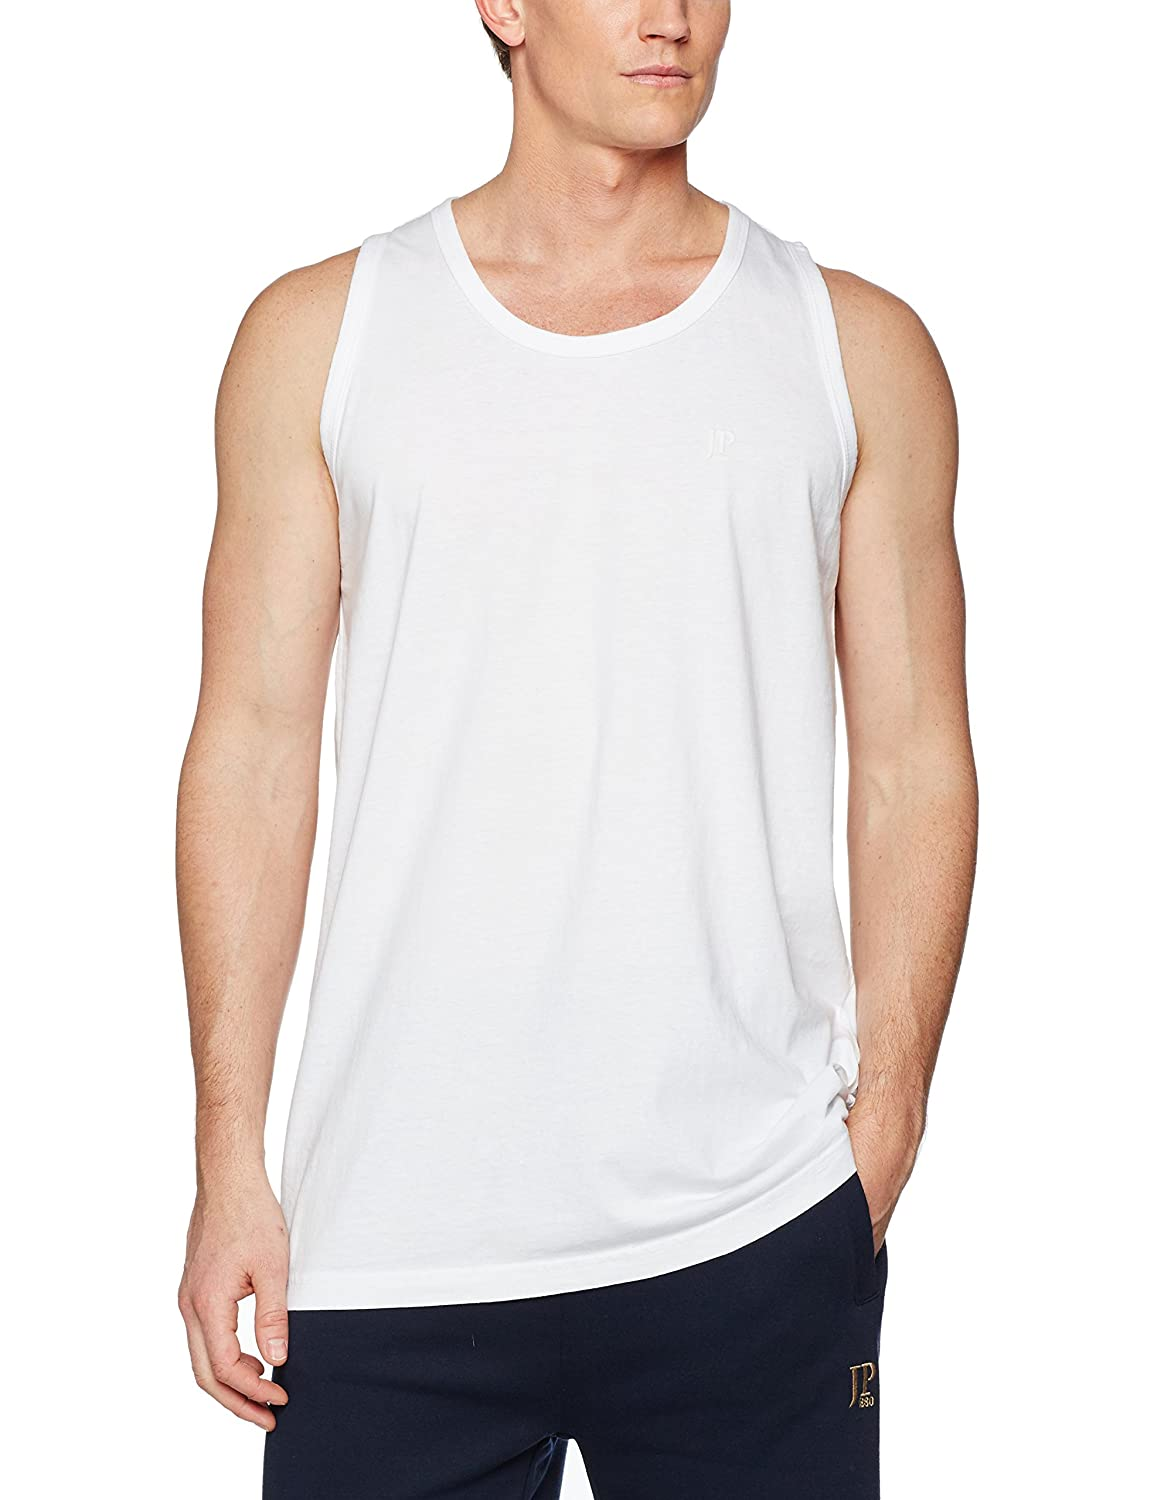 b6c93a02af238a JP 1880 Men s Big   Tall Basic Cotton Tank Top 705145 at Amazon Men s  Clothing store